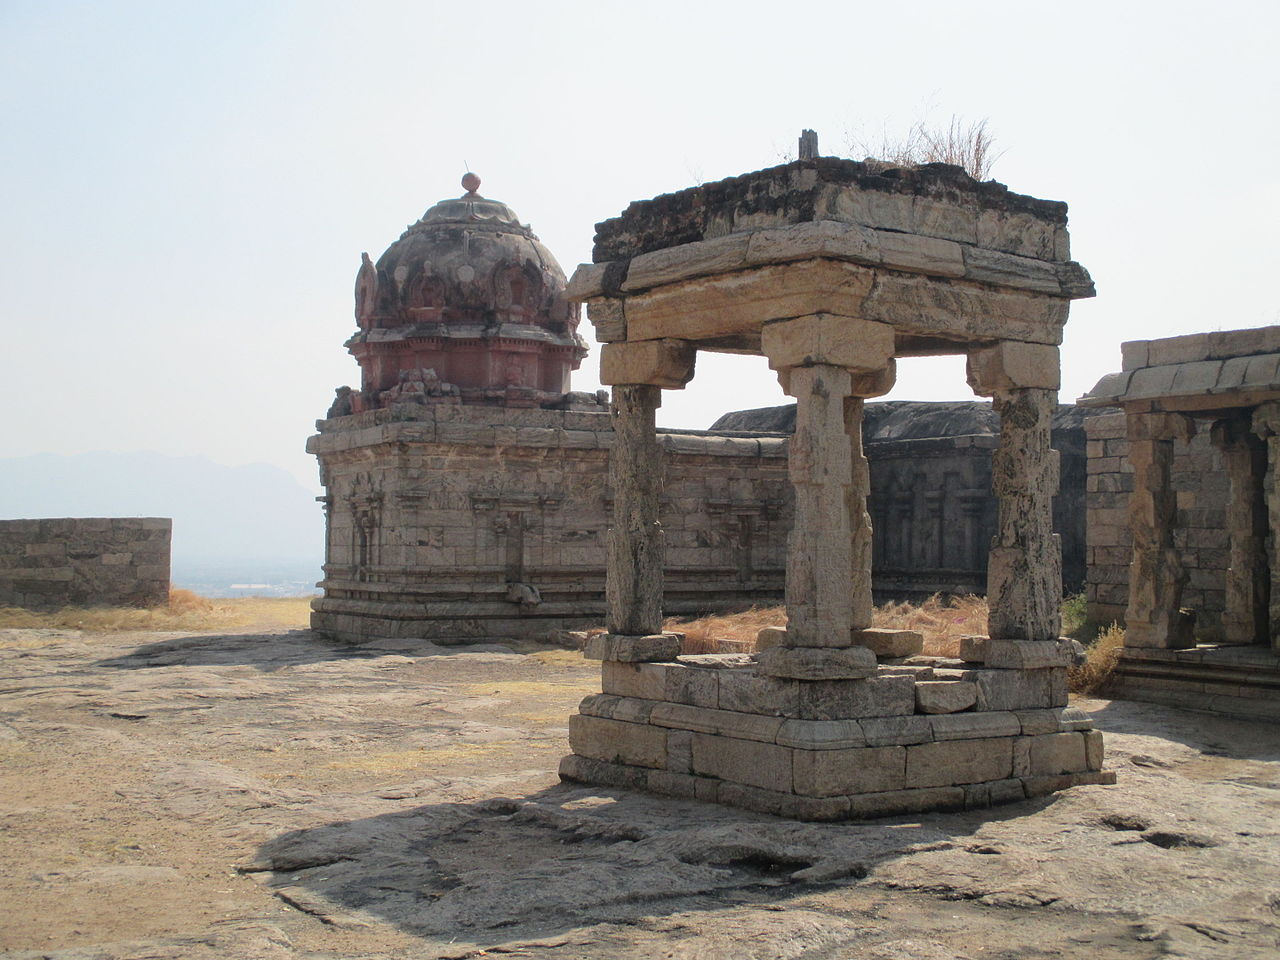 Architecture of the Dindigul Fort, Tamil Nadu